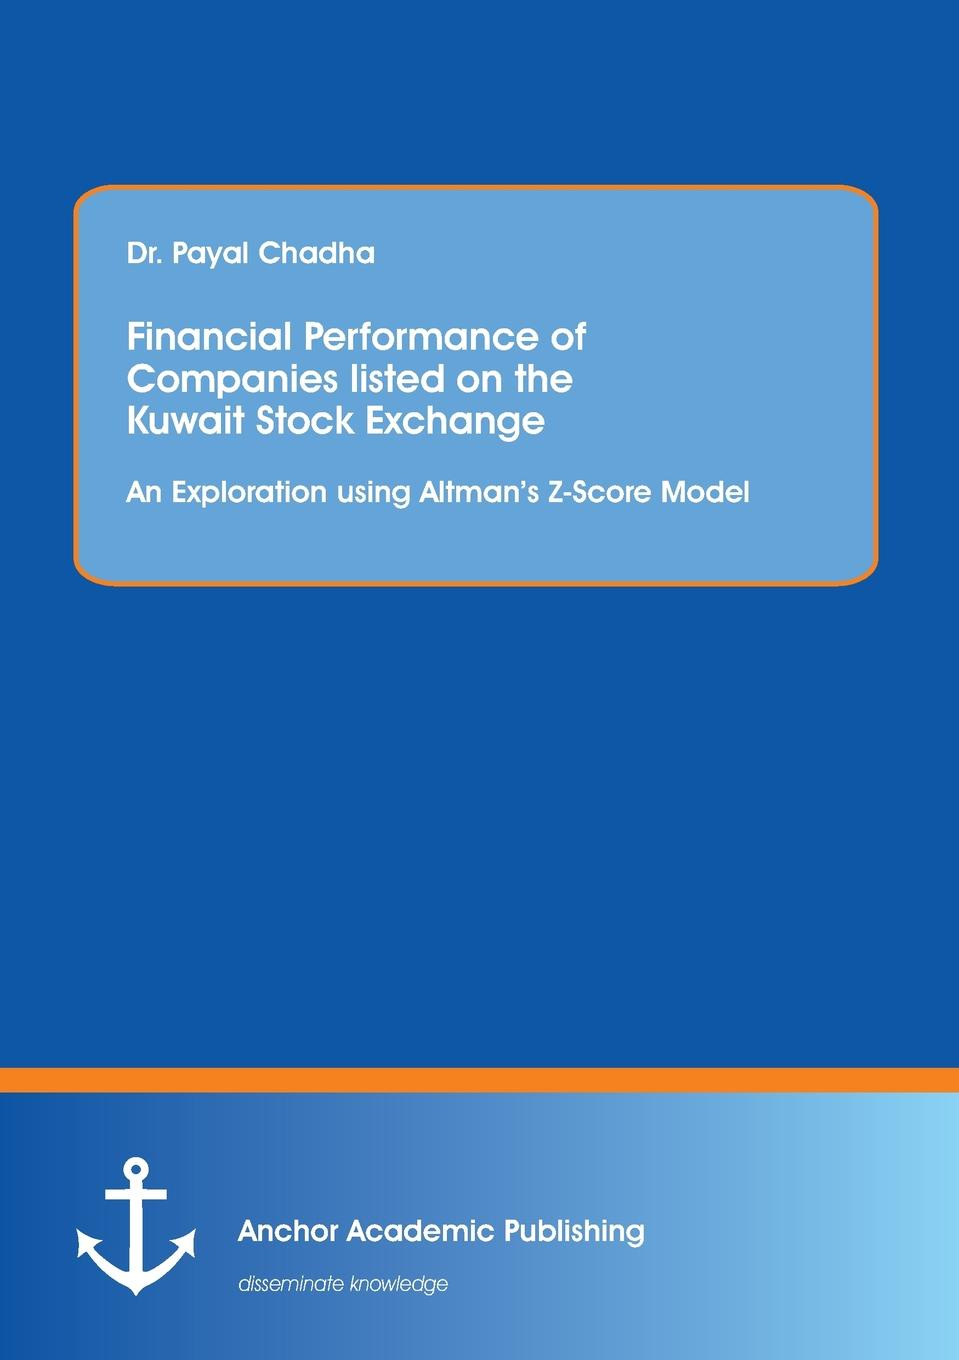 Dr. Payal Chadha Financial Performance of Companies listed on the Kuwait Stock Exchange. An Exploration using Altman.s Z-Score Model